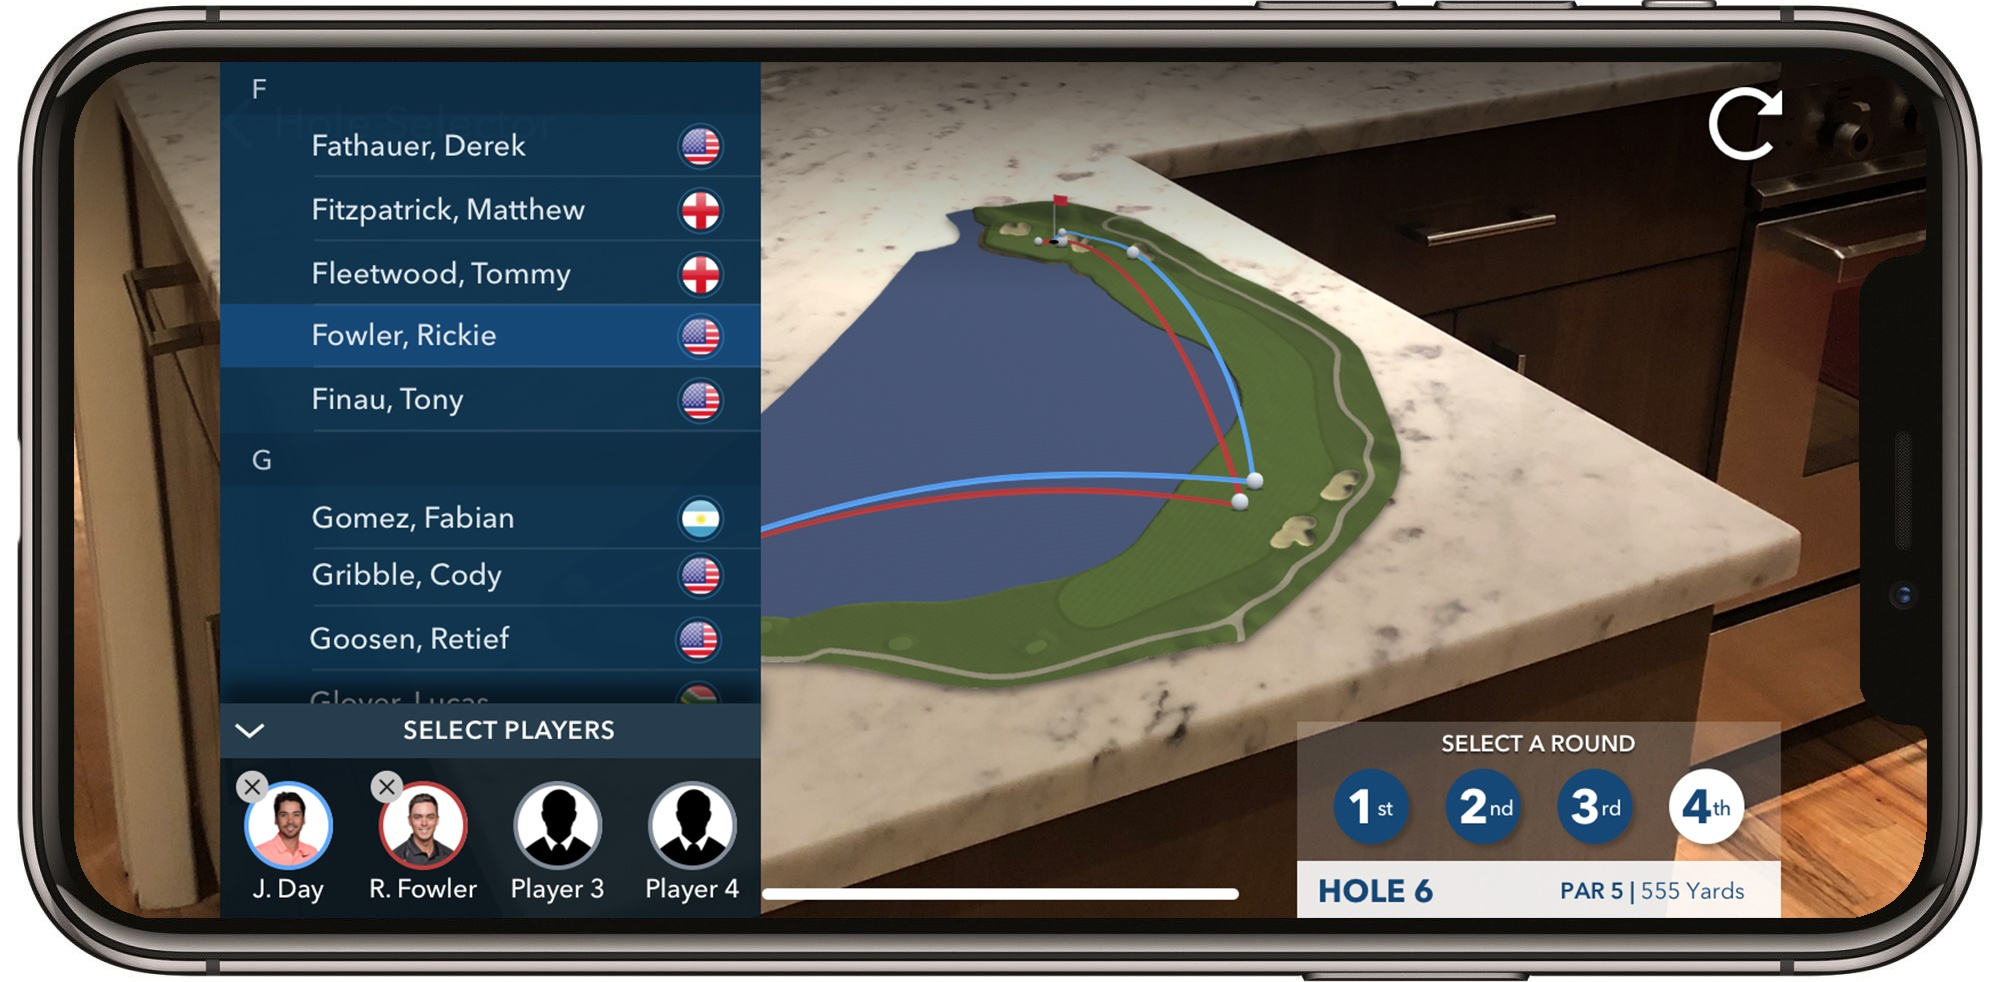 Image Media for PGA TOUR Augmented Reality (AR)